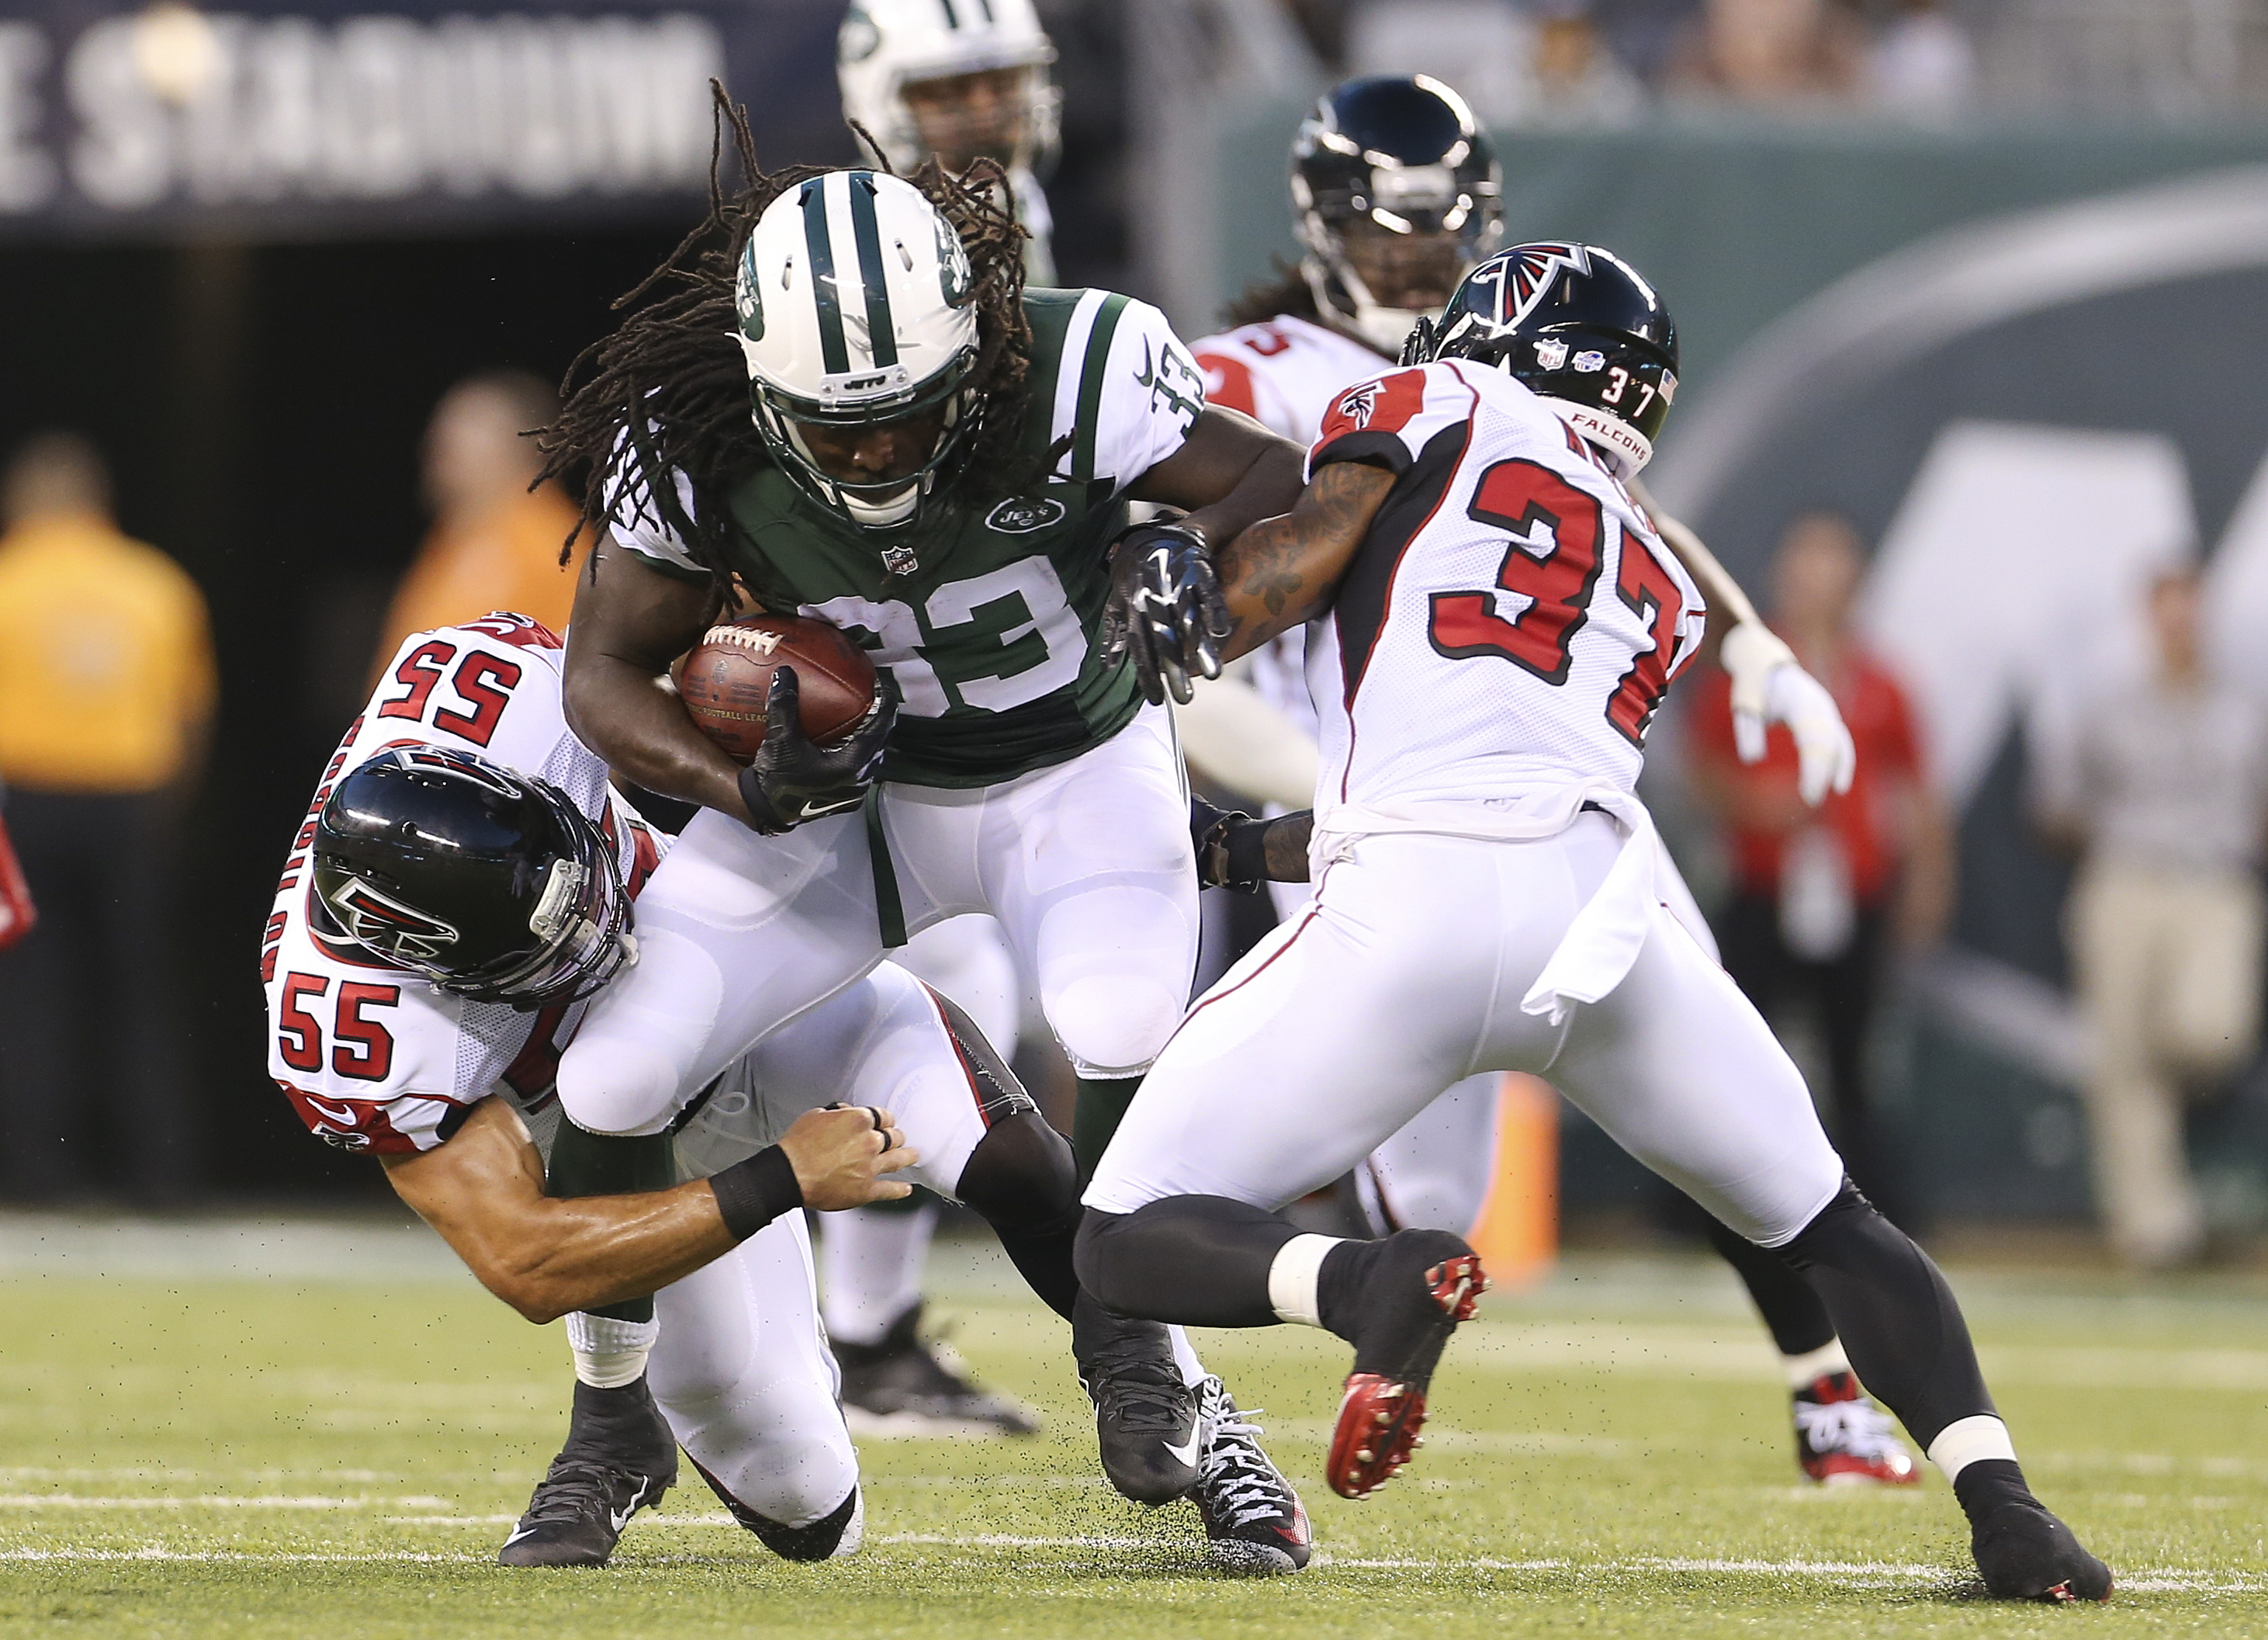 FILE - In this Aug. 21, 2015, file photo, Atlanta Falcons' Paul Worrilow (55) and Ricardo Allen (37) tackle New York Jets' Chris Ivory (33) during the first half of a preseason NFL football game in East Rutherford, N.J. Ivory is a possible breakthrough fo